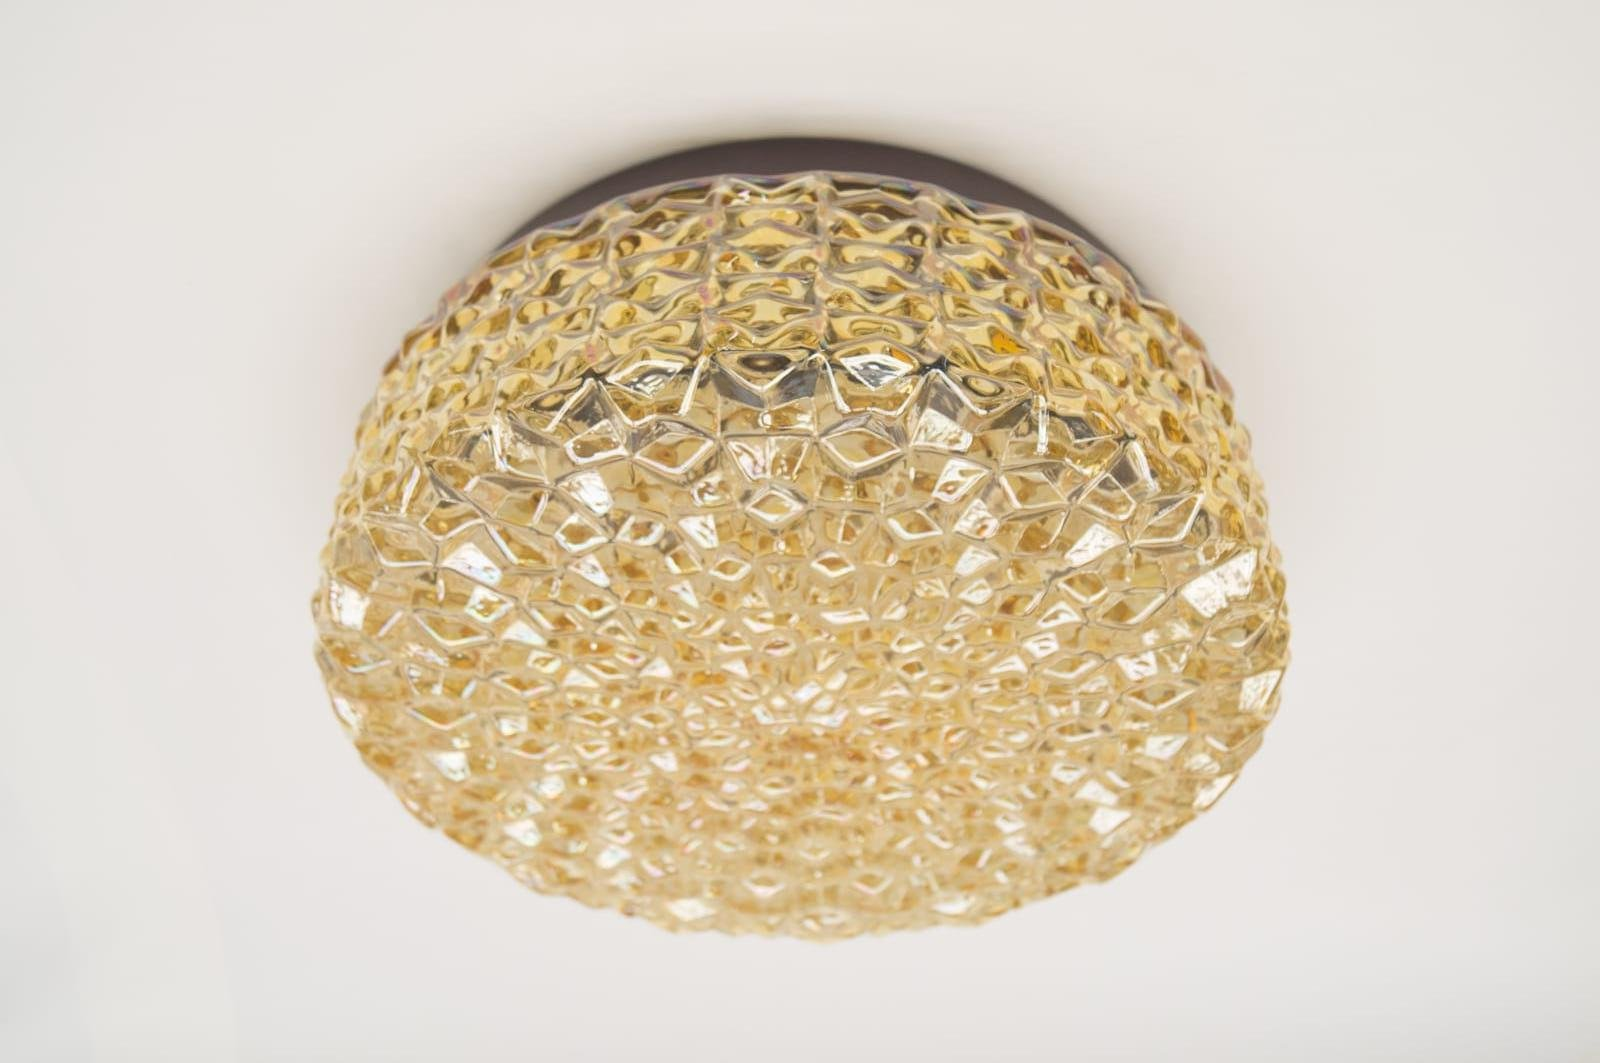 Golden Structure Glass Wall Lamp with Geometric 3D Pattern, 1960s ... for Geometric Wall Lamp  34eri